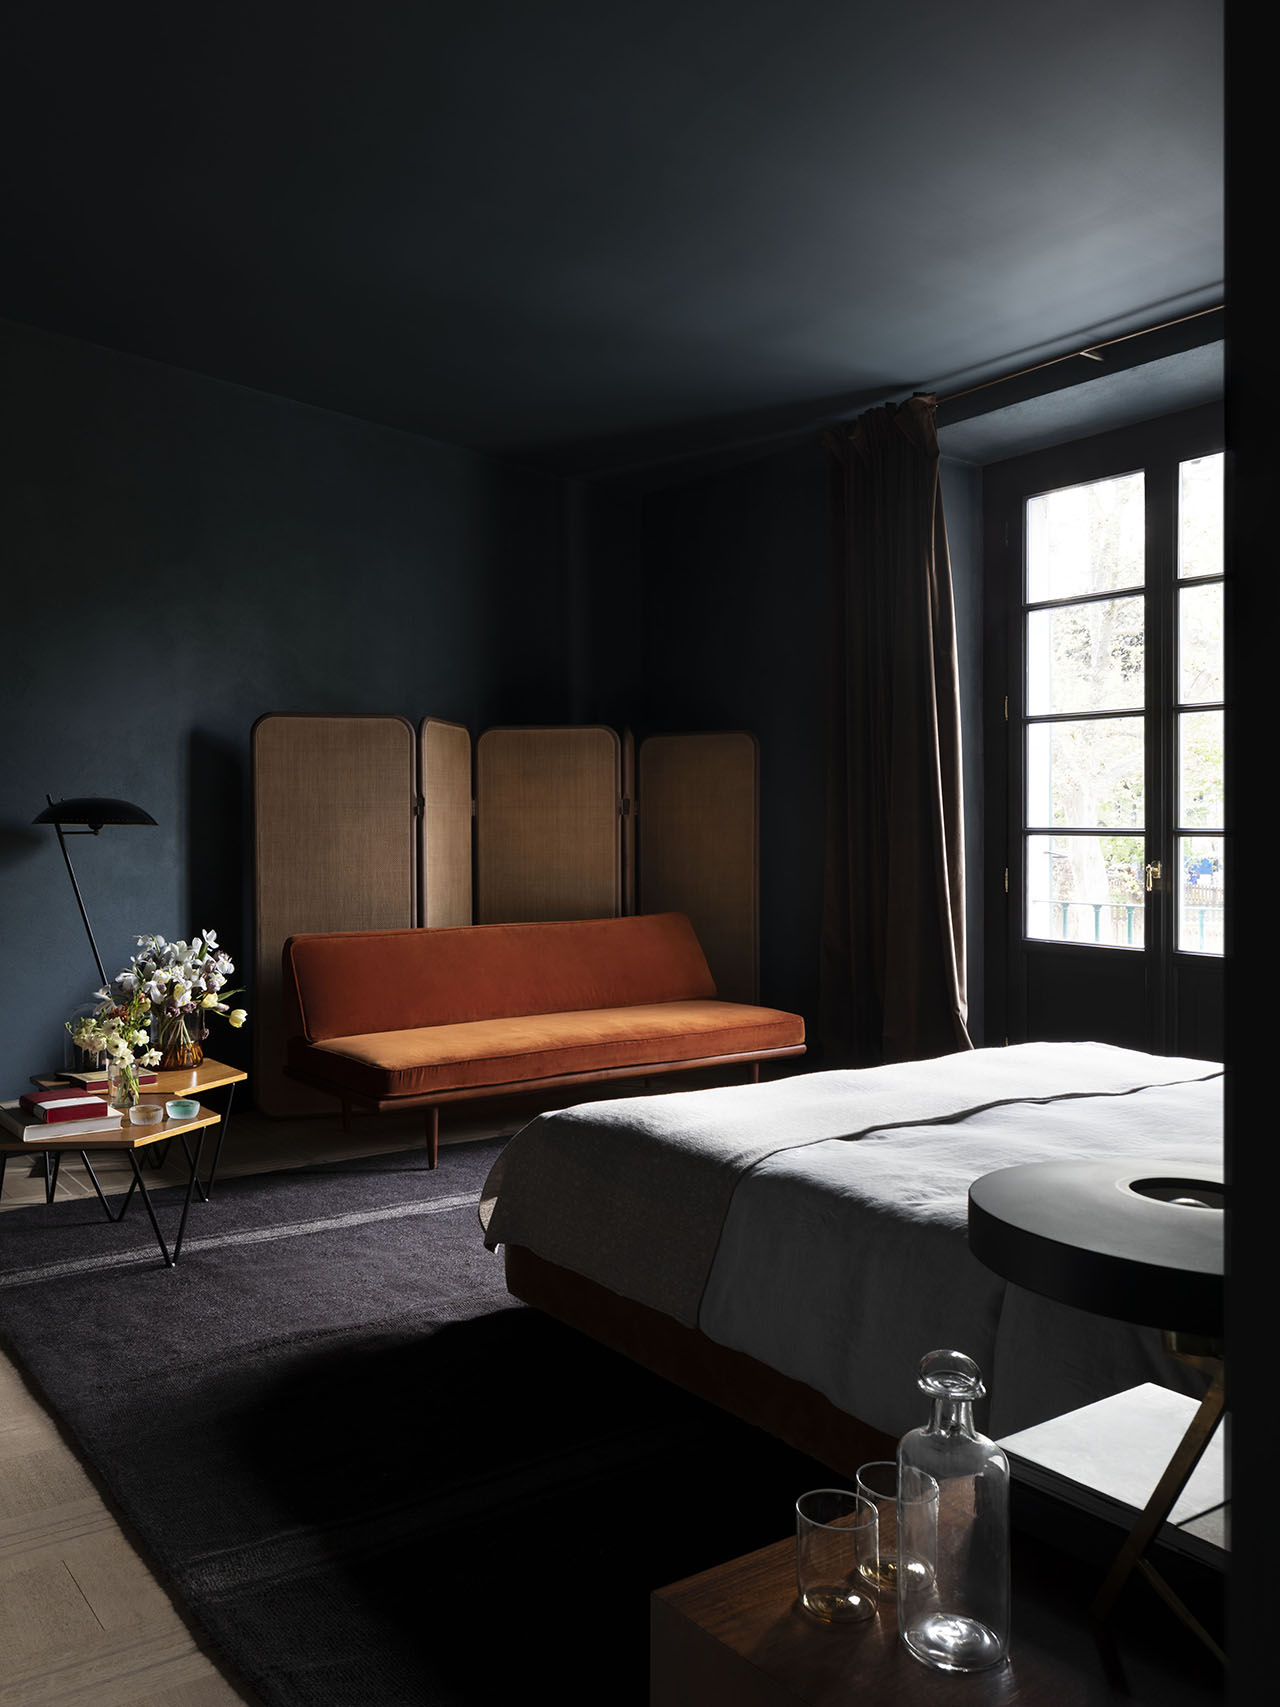 The Sister Hotel (Opening: autumn 2019 on Via Scaldasole 7) by entrepreneur Mauro Orlandelli, founder of the holistic Six project, and art director Samuele Savio.Photo © Alberto Strada .